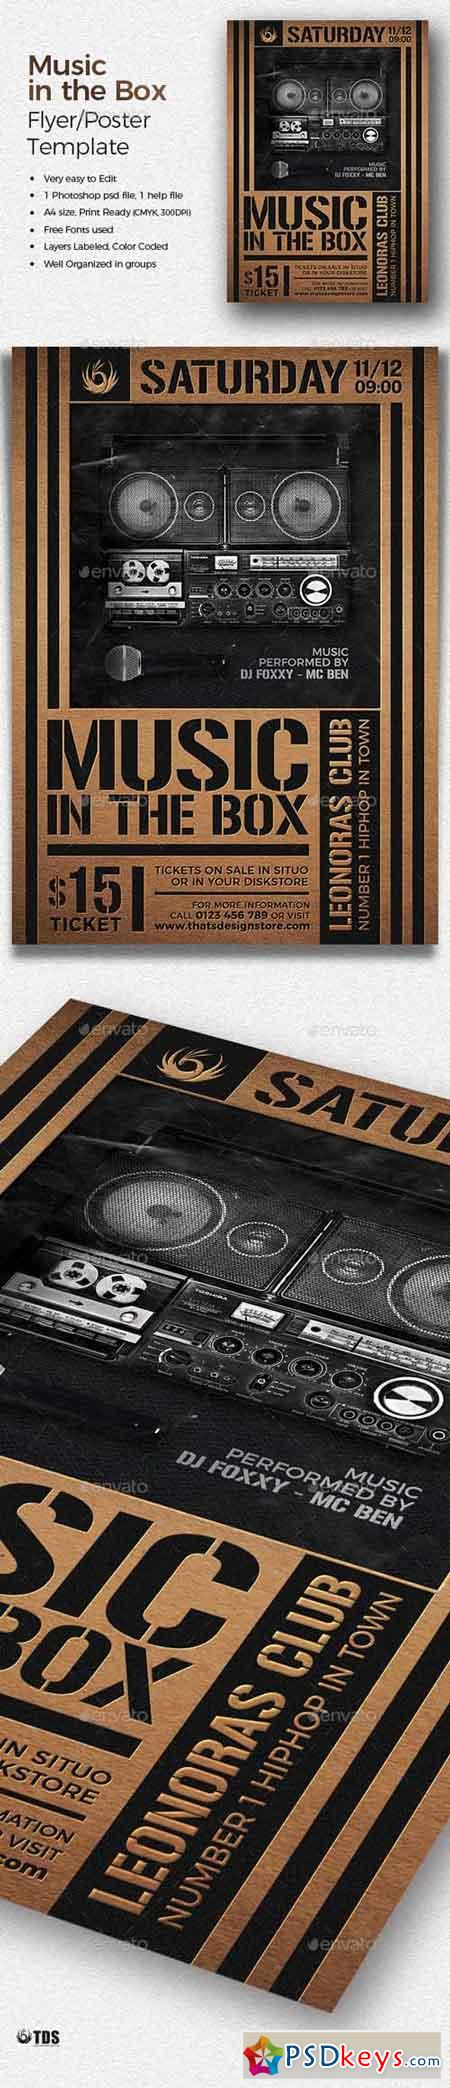 Music in the Box Flyer Template 20158196